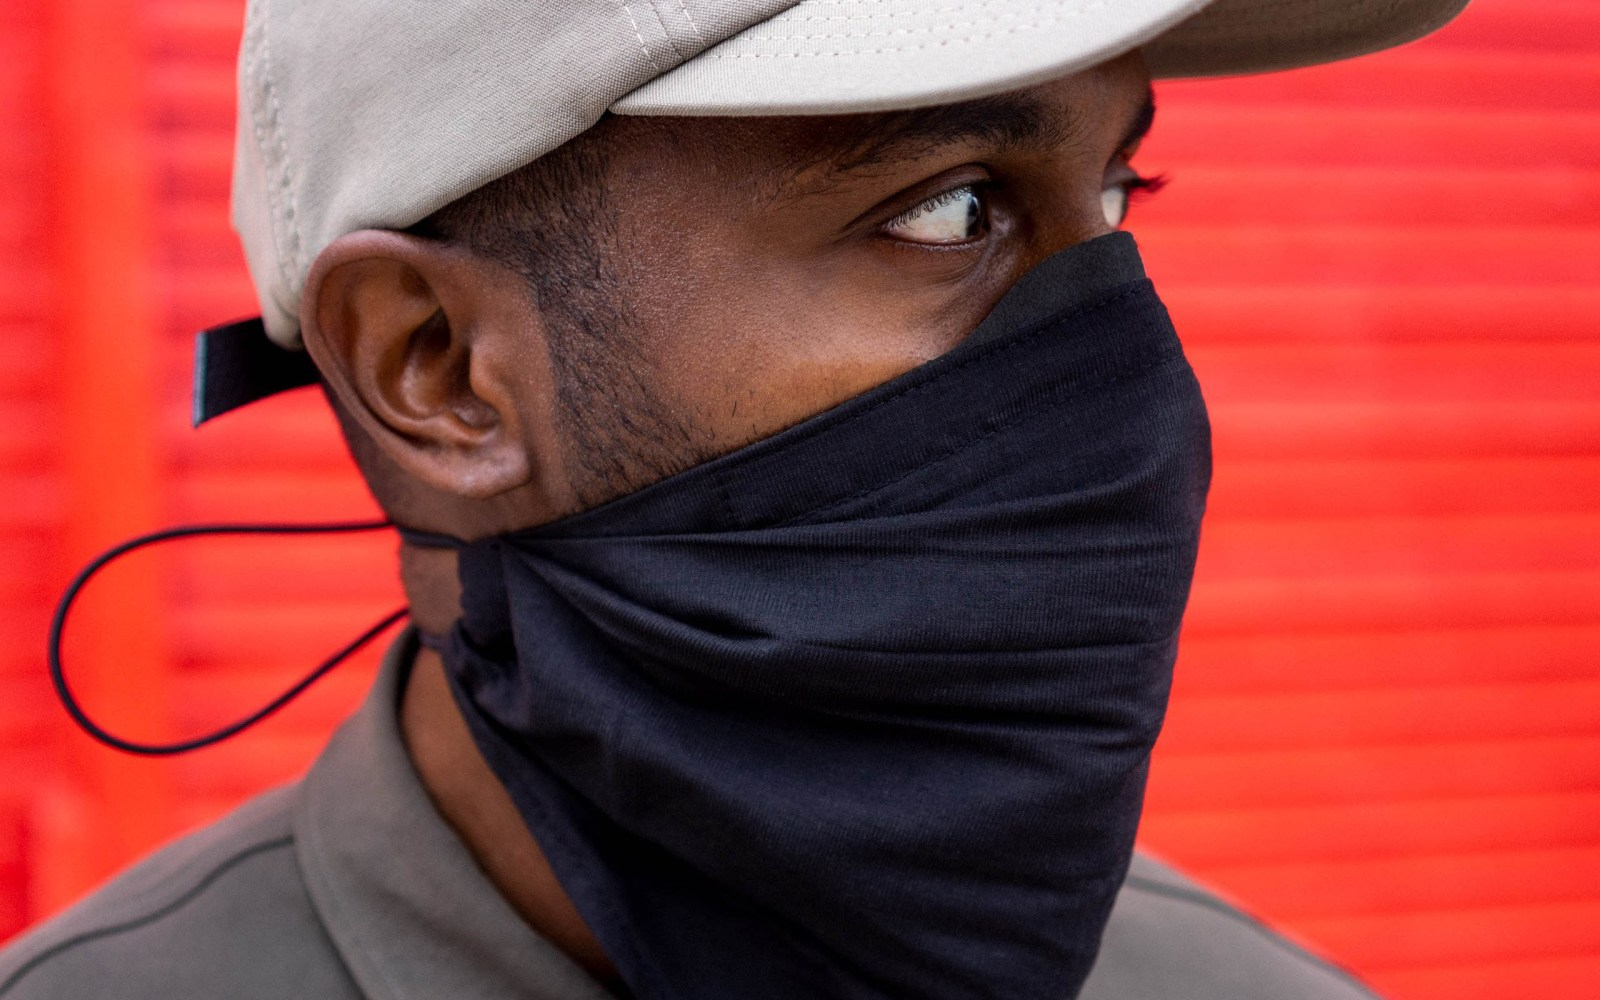 Mask001 Ultrasuede Snaptight: the mask to Fight the Covid like a Cowboy Bandit